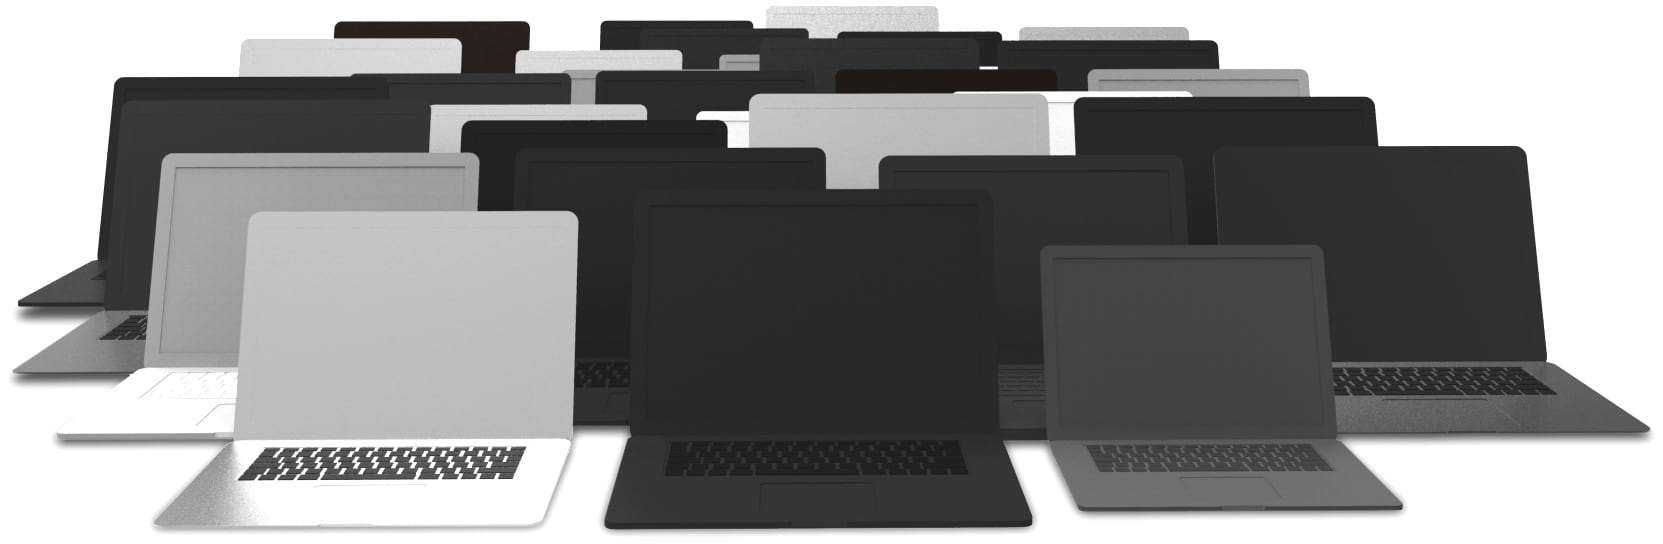 Tiny Tower Laptop Stand Fits 11 to 15 inch Laptops